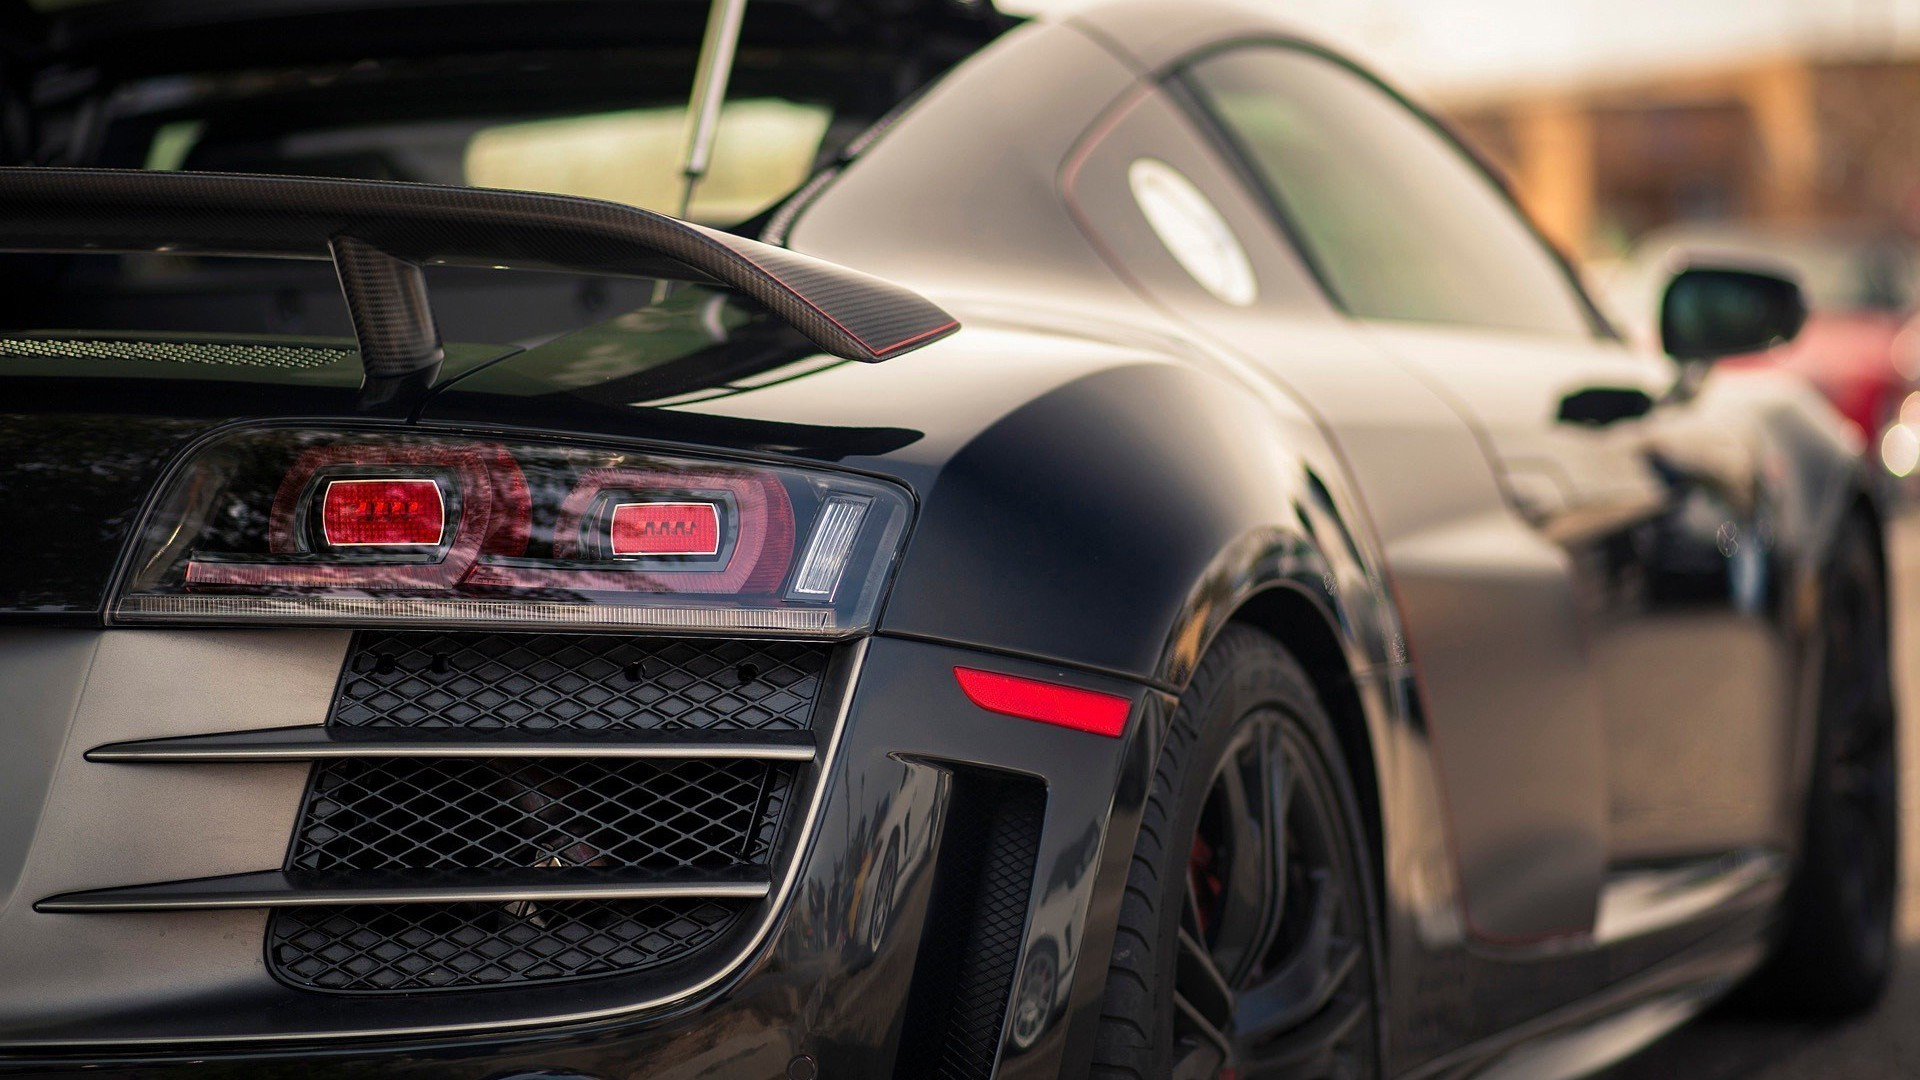 Audi R8 Cars Vehicles Wallpaper